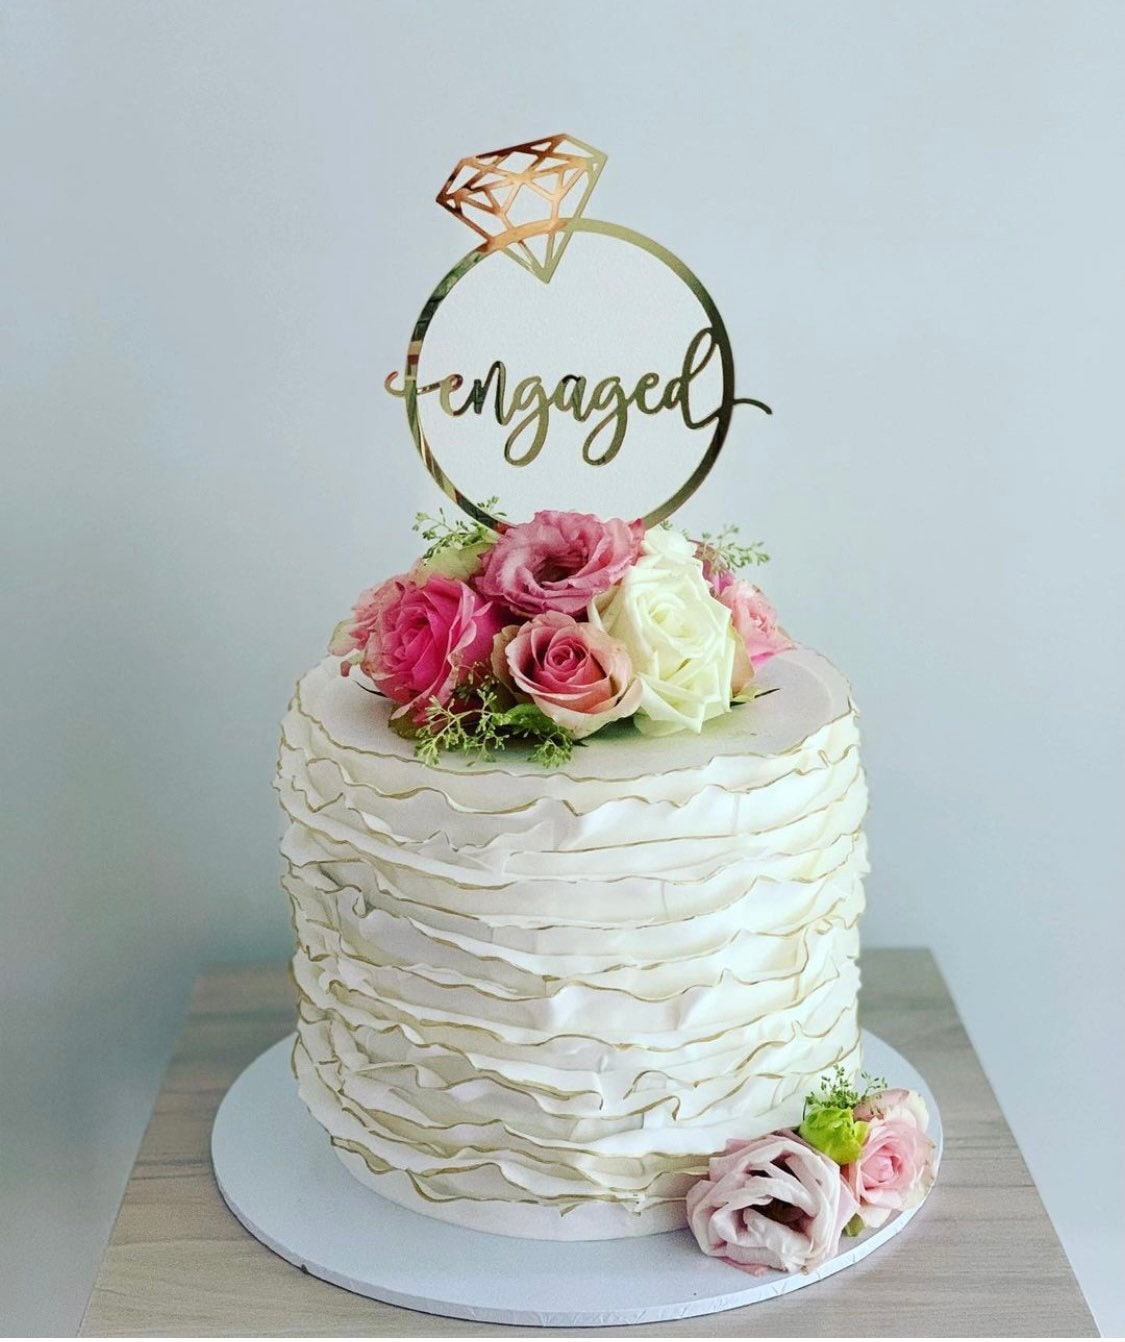 Engaged With Diamond Ring Cake Topper Engagement